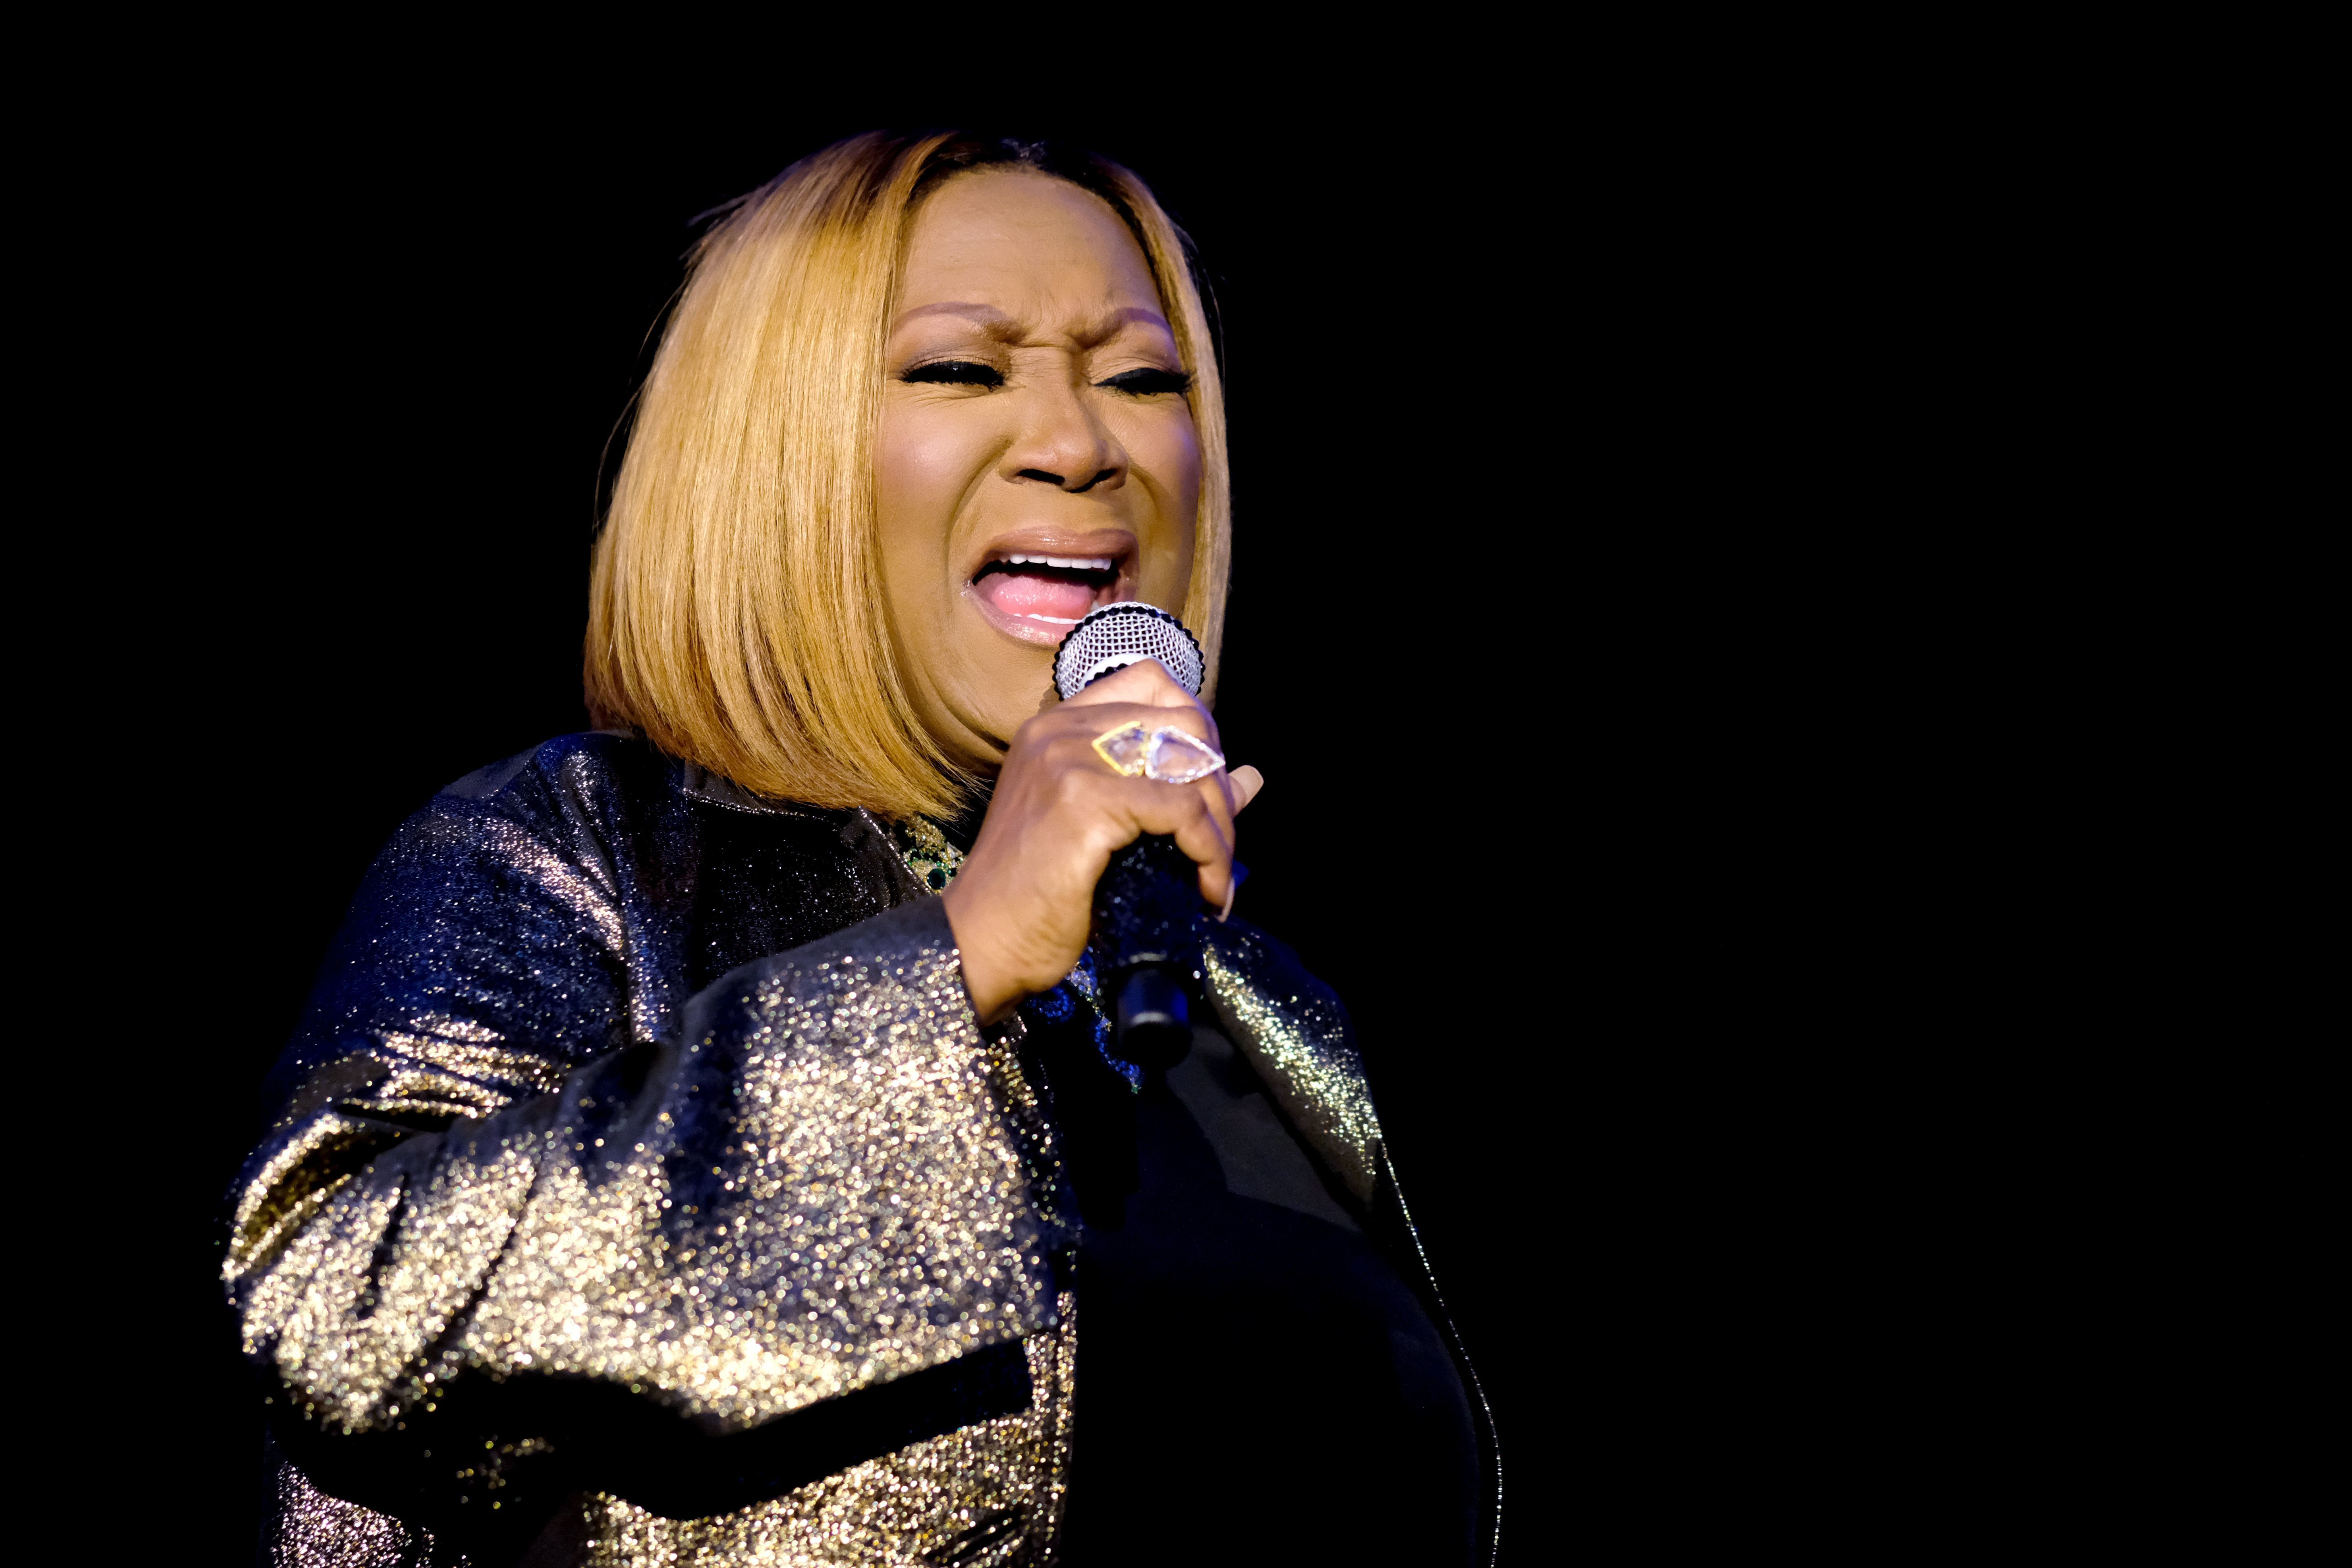 Patti LaBelle's most recent albums arrived in 2017.